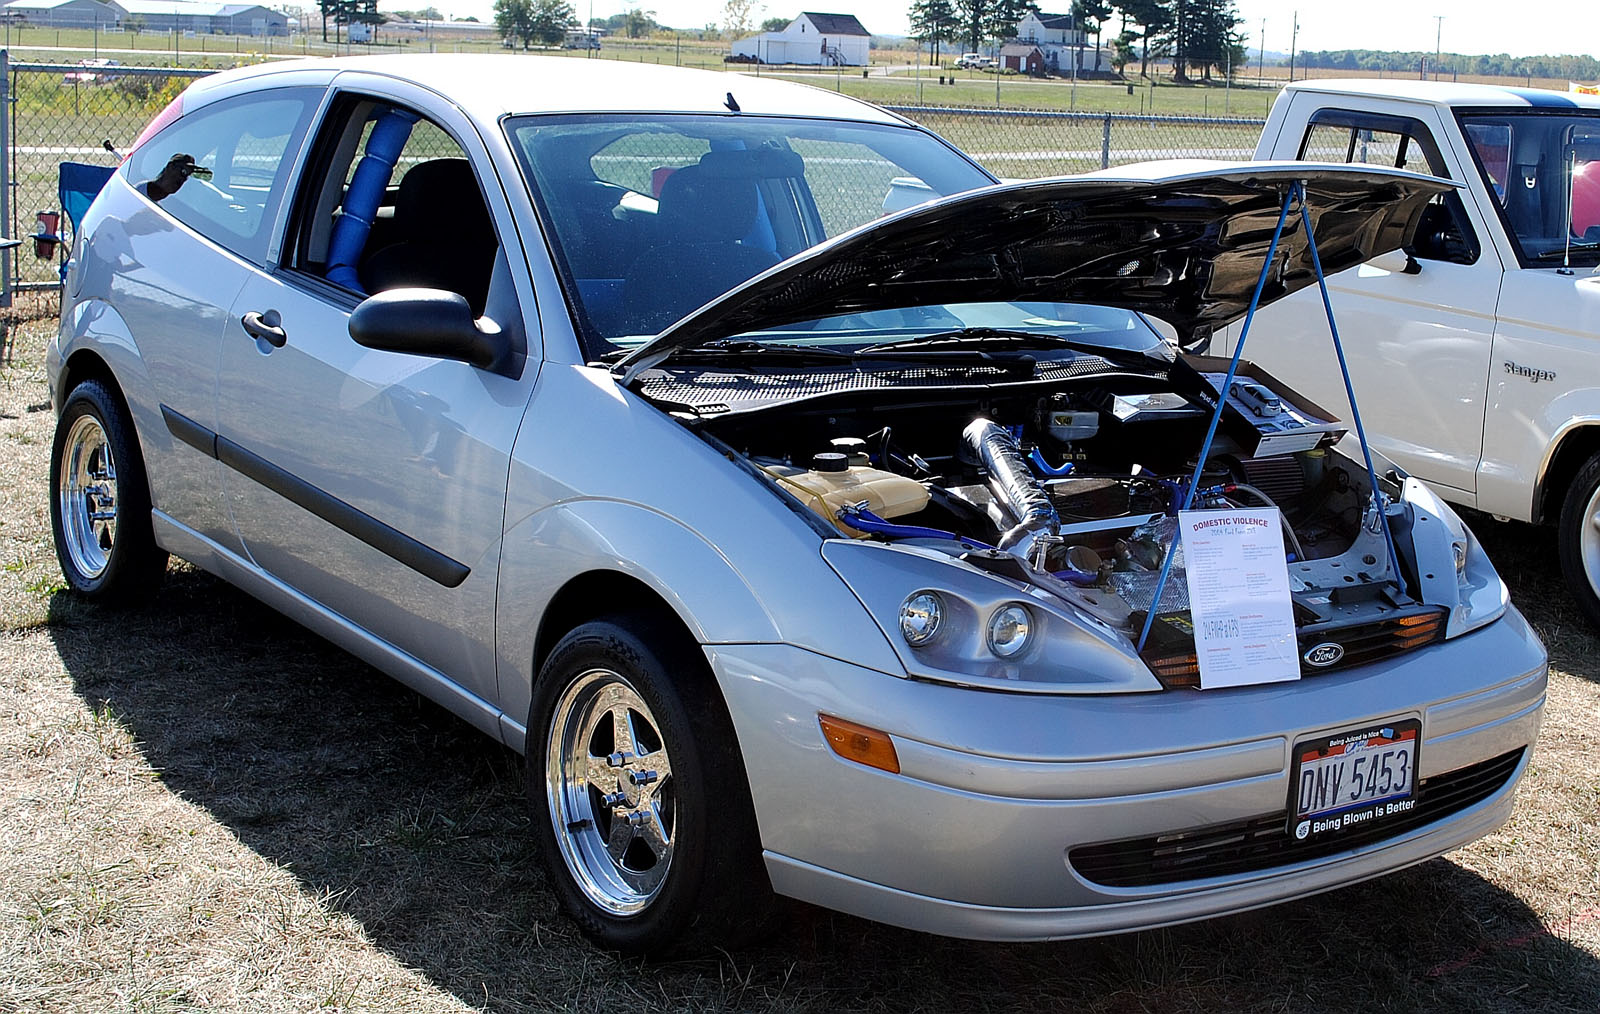 2004 ford focus roush turbo for sale cincinnati ohio. Black Bedroom Furniture Sets. Home Design Ideas